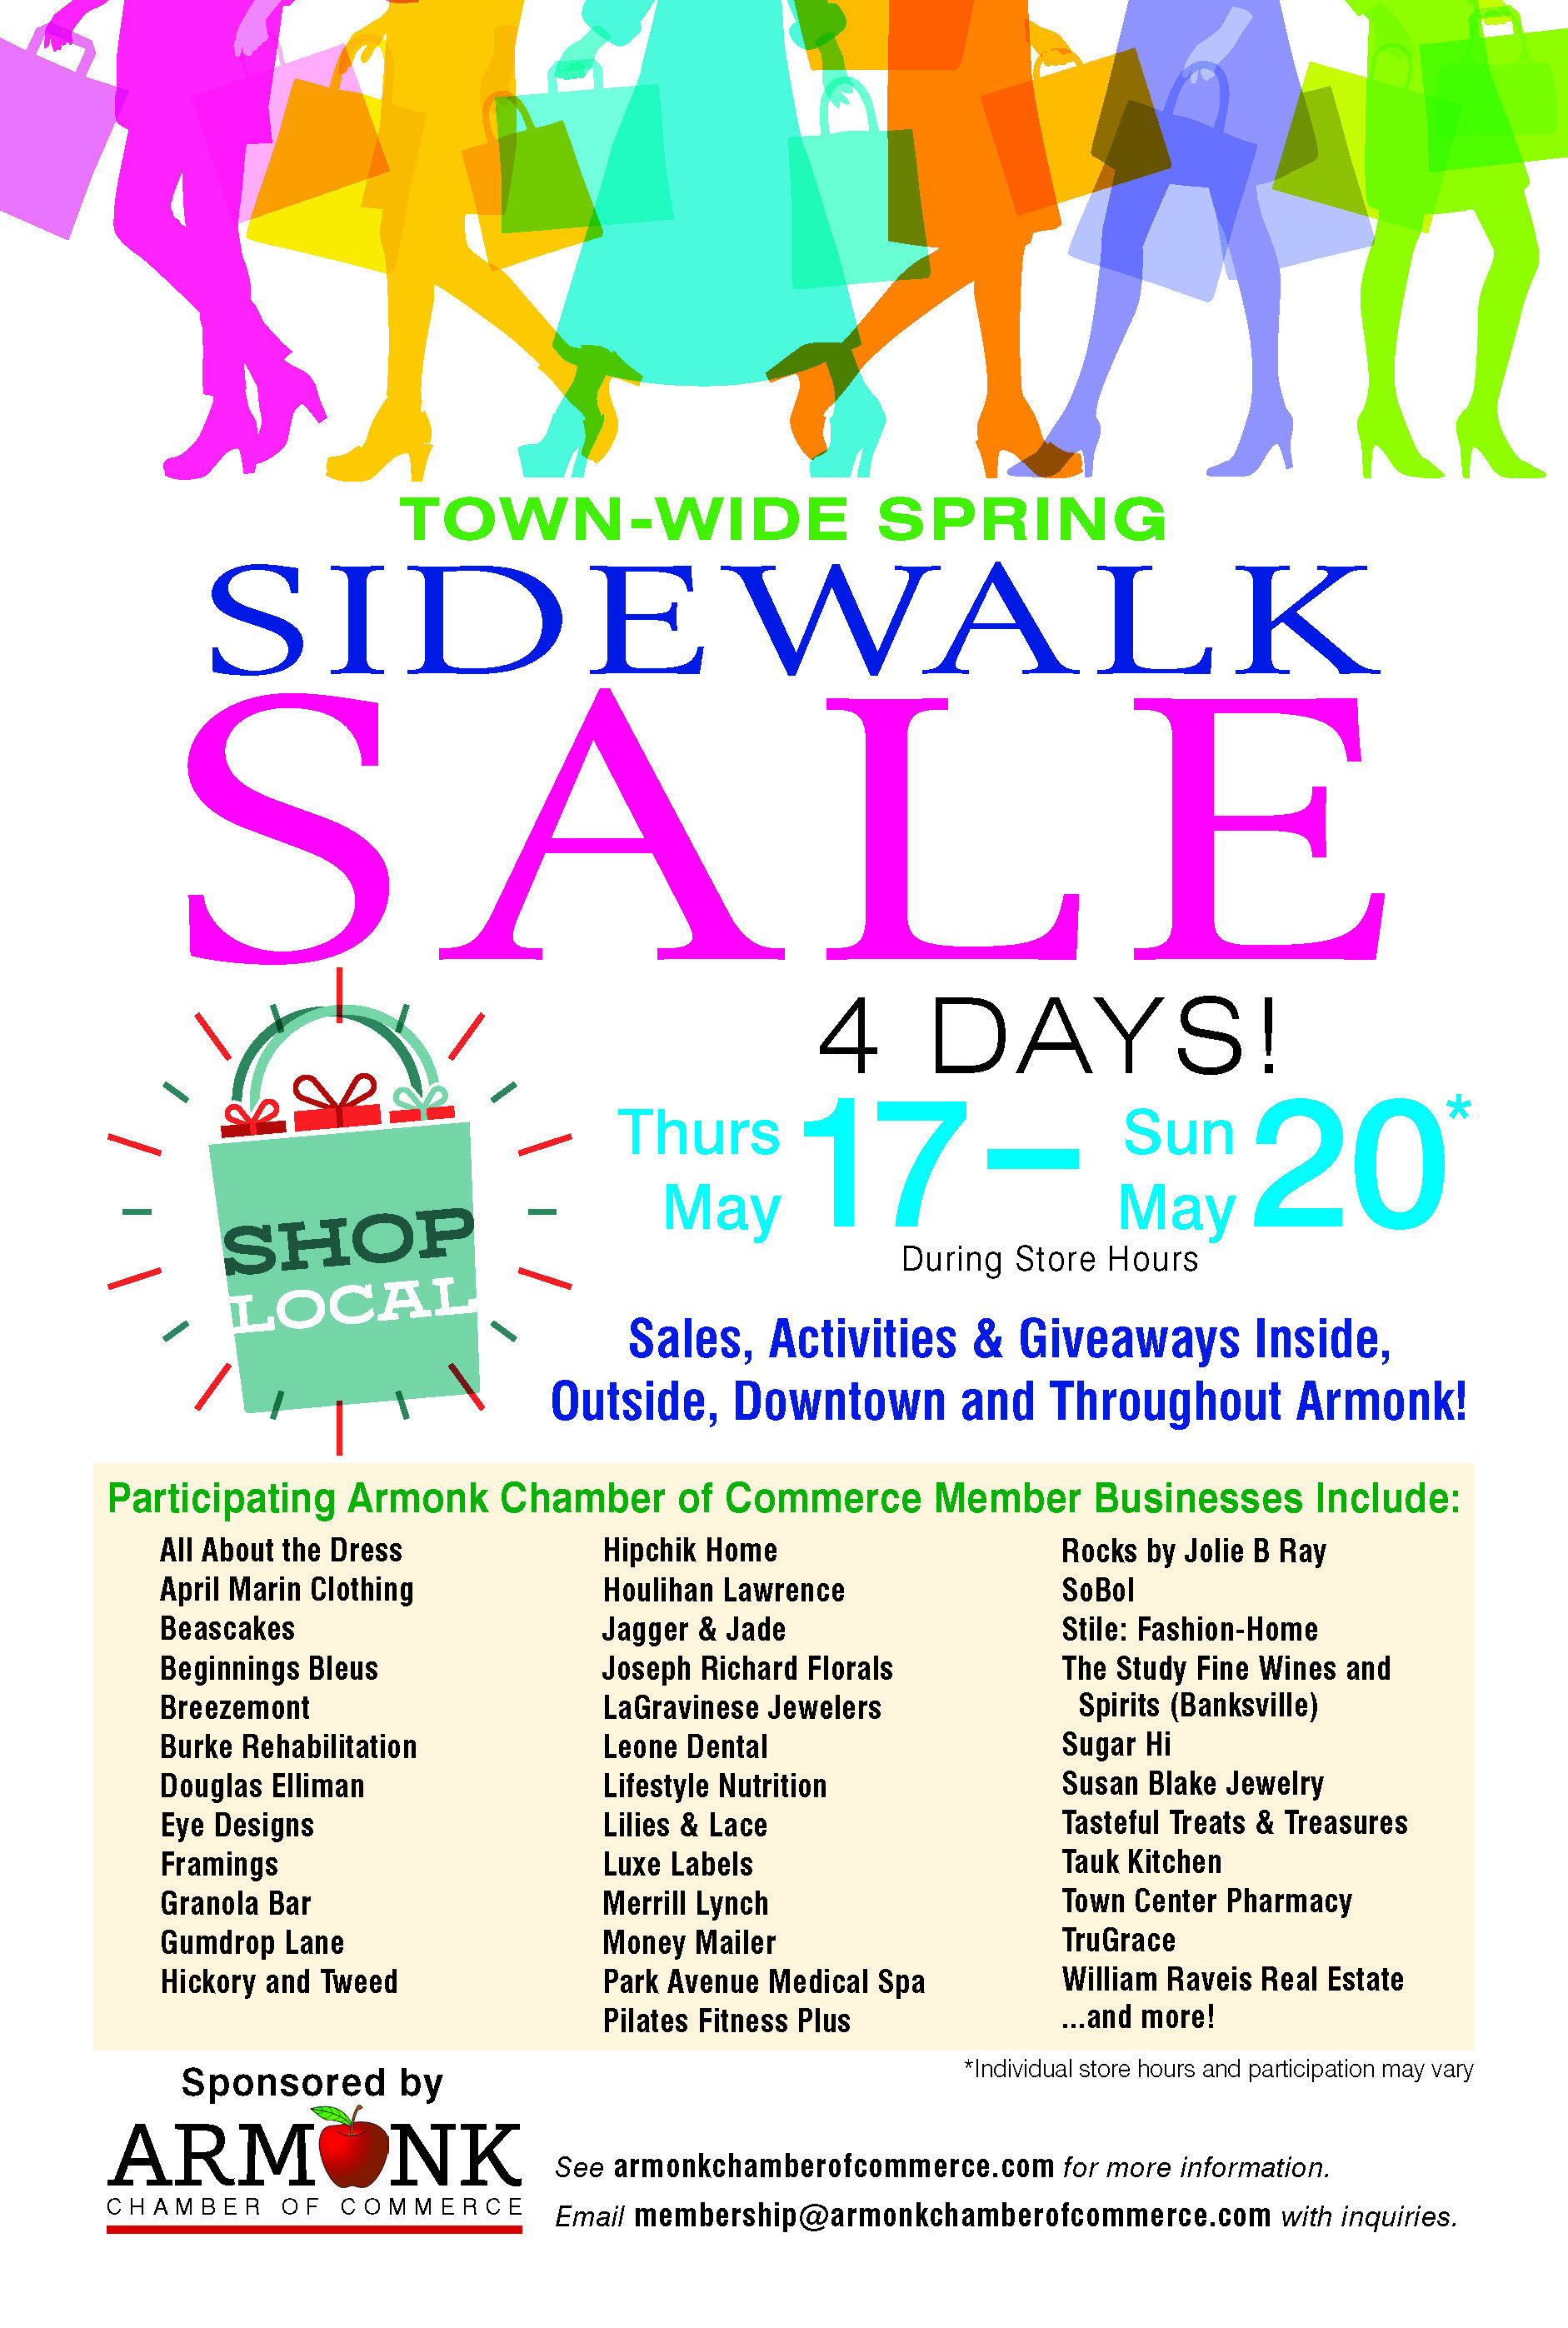 Connect-SidewalkSale_ad-final3c.jpg